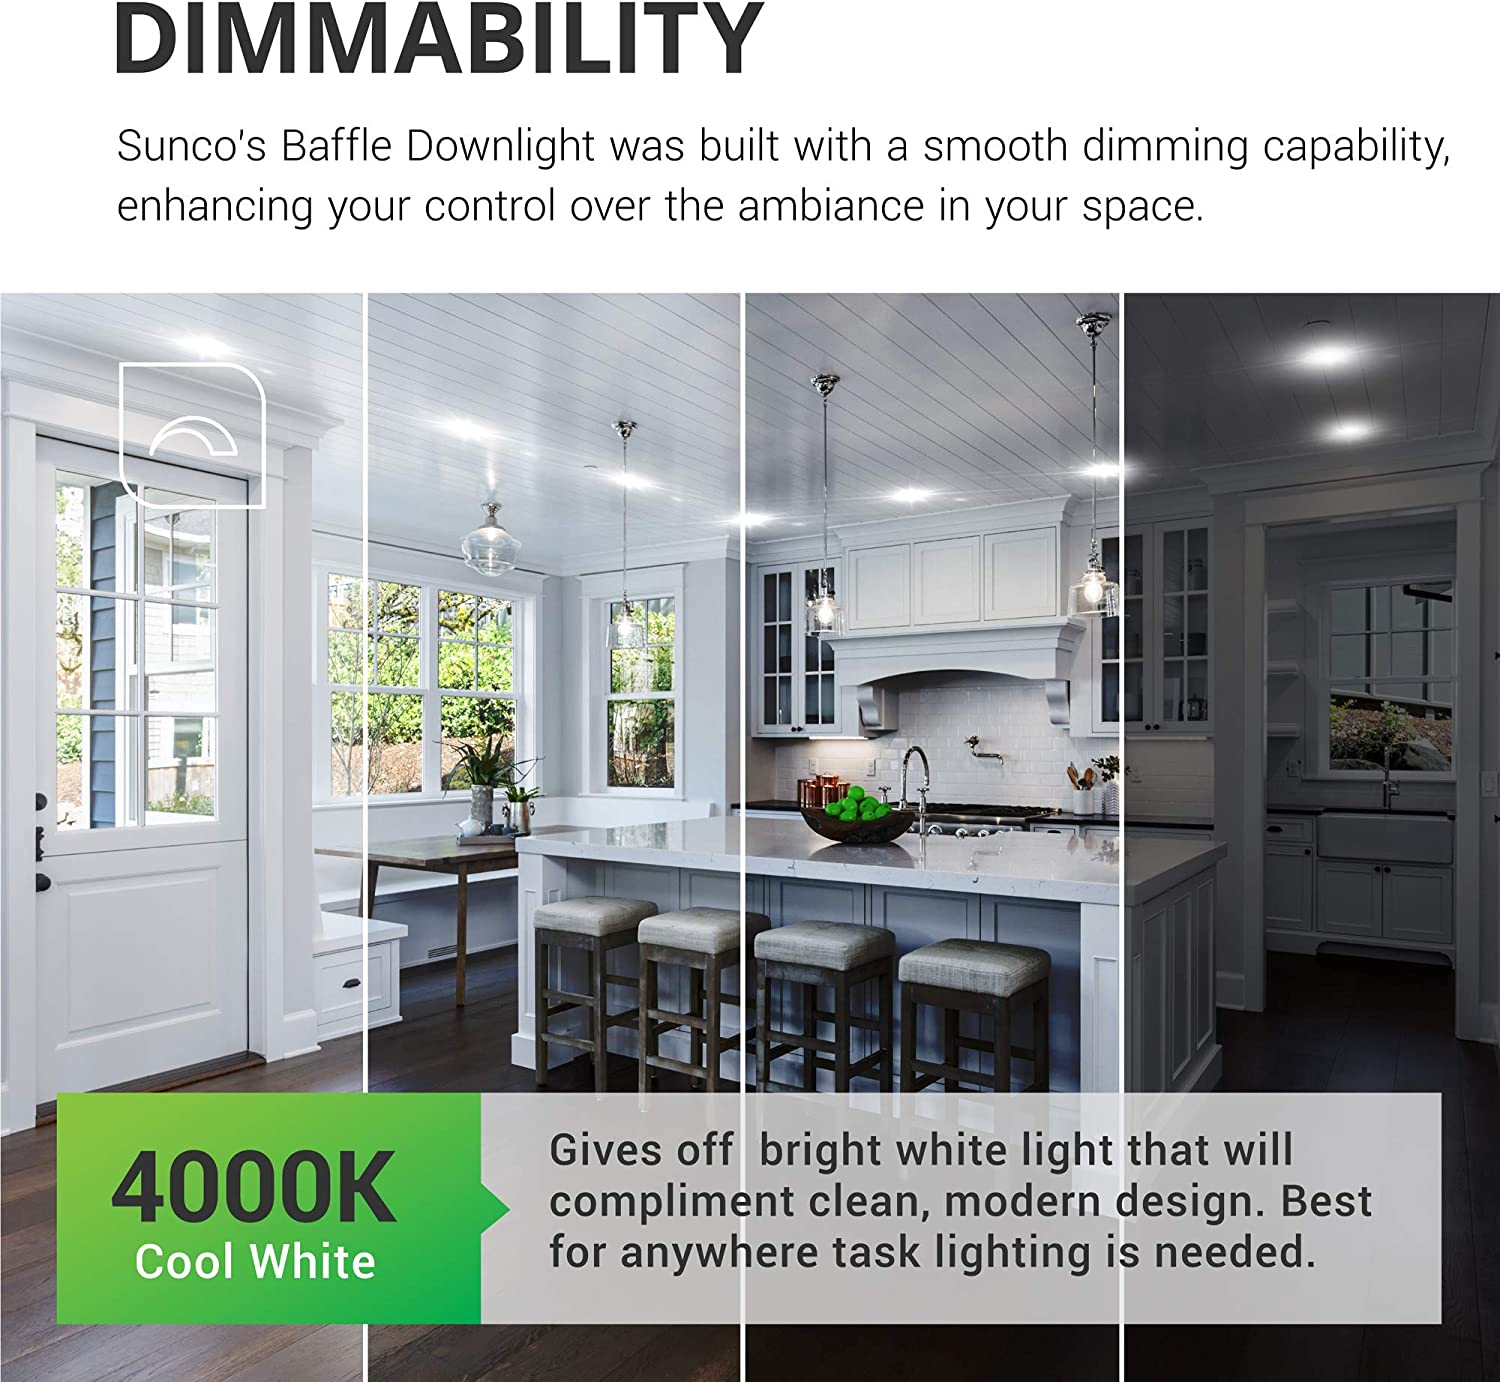 Waterproof Baffle Trim 1050 LM 5000K Daylight Dimmable UL Simple Retrofit Installation Energy Star 13W=75W Sunco Lighting 12 Pack 5//6 Inch LED Recessed Downlight